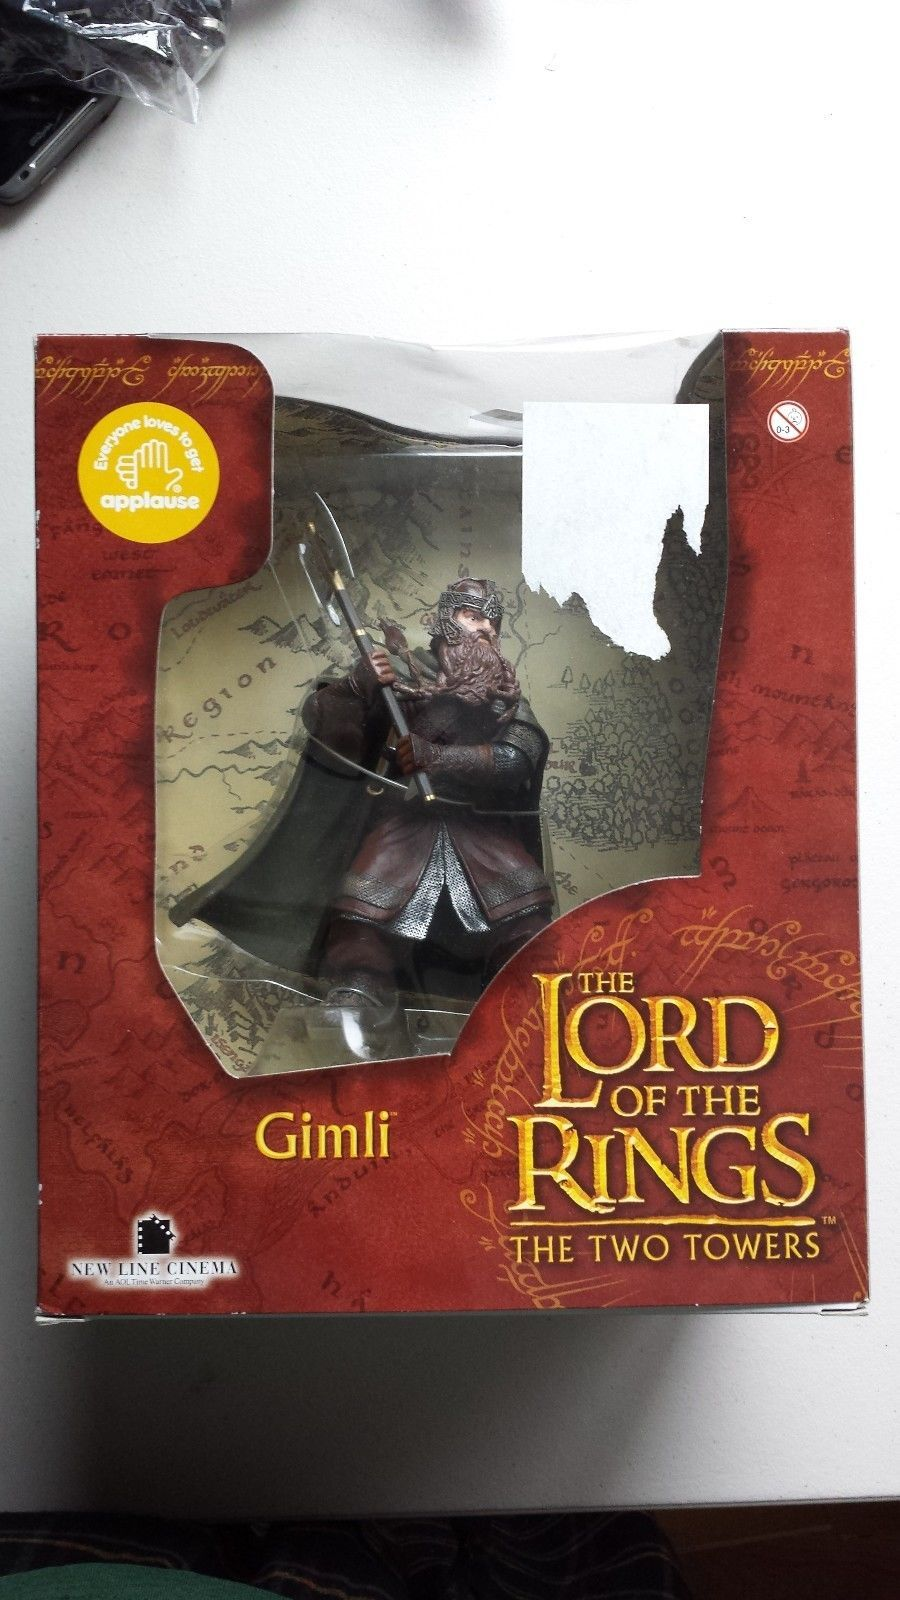 United lotr images uc1380aslb anduril jpg - The Lord Of The Rings The Two Towers Gimli Action Figure By Applause